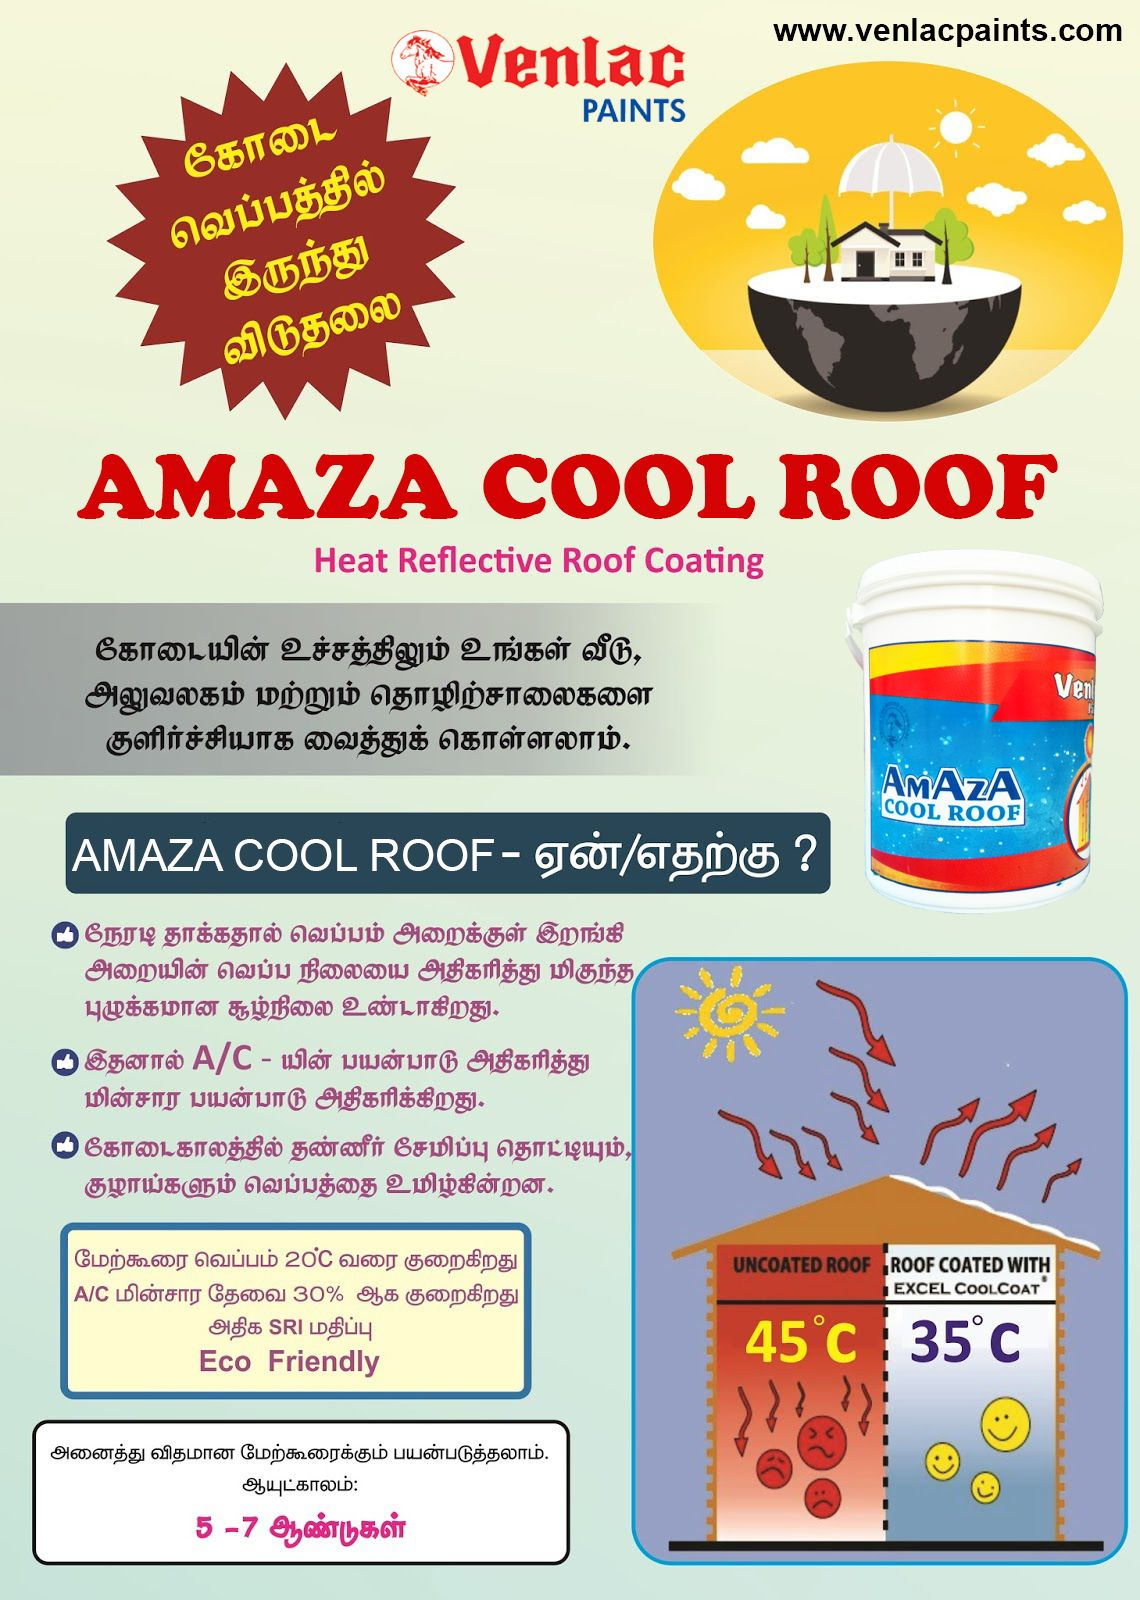 Venlac Paints Cool Roof Roof Paint Roof Coating